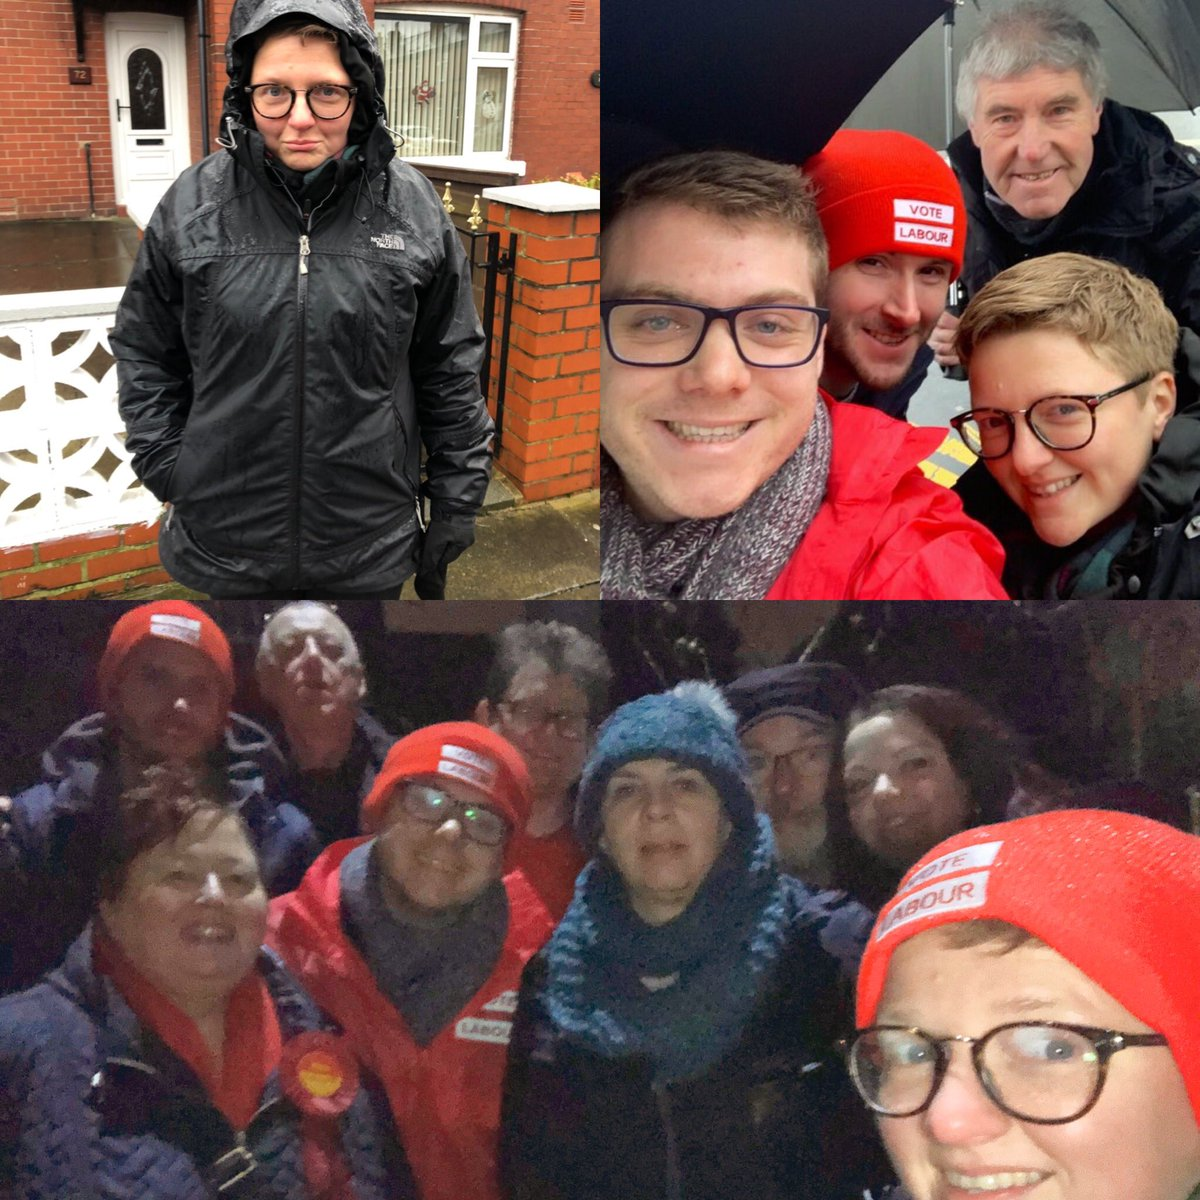 Today was cold and wet, but we weren't miserable, with lots up Team @McrLabour helping getting the vote out for @JamesFrith in Bury North. Politics is made up of ordinary but wonderful people out in crap weather trying to change the world #VoteLabour #GeneralElection 🌹🗳